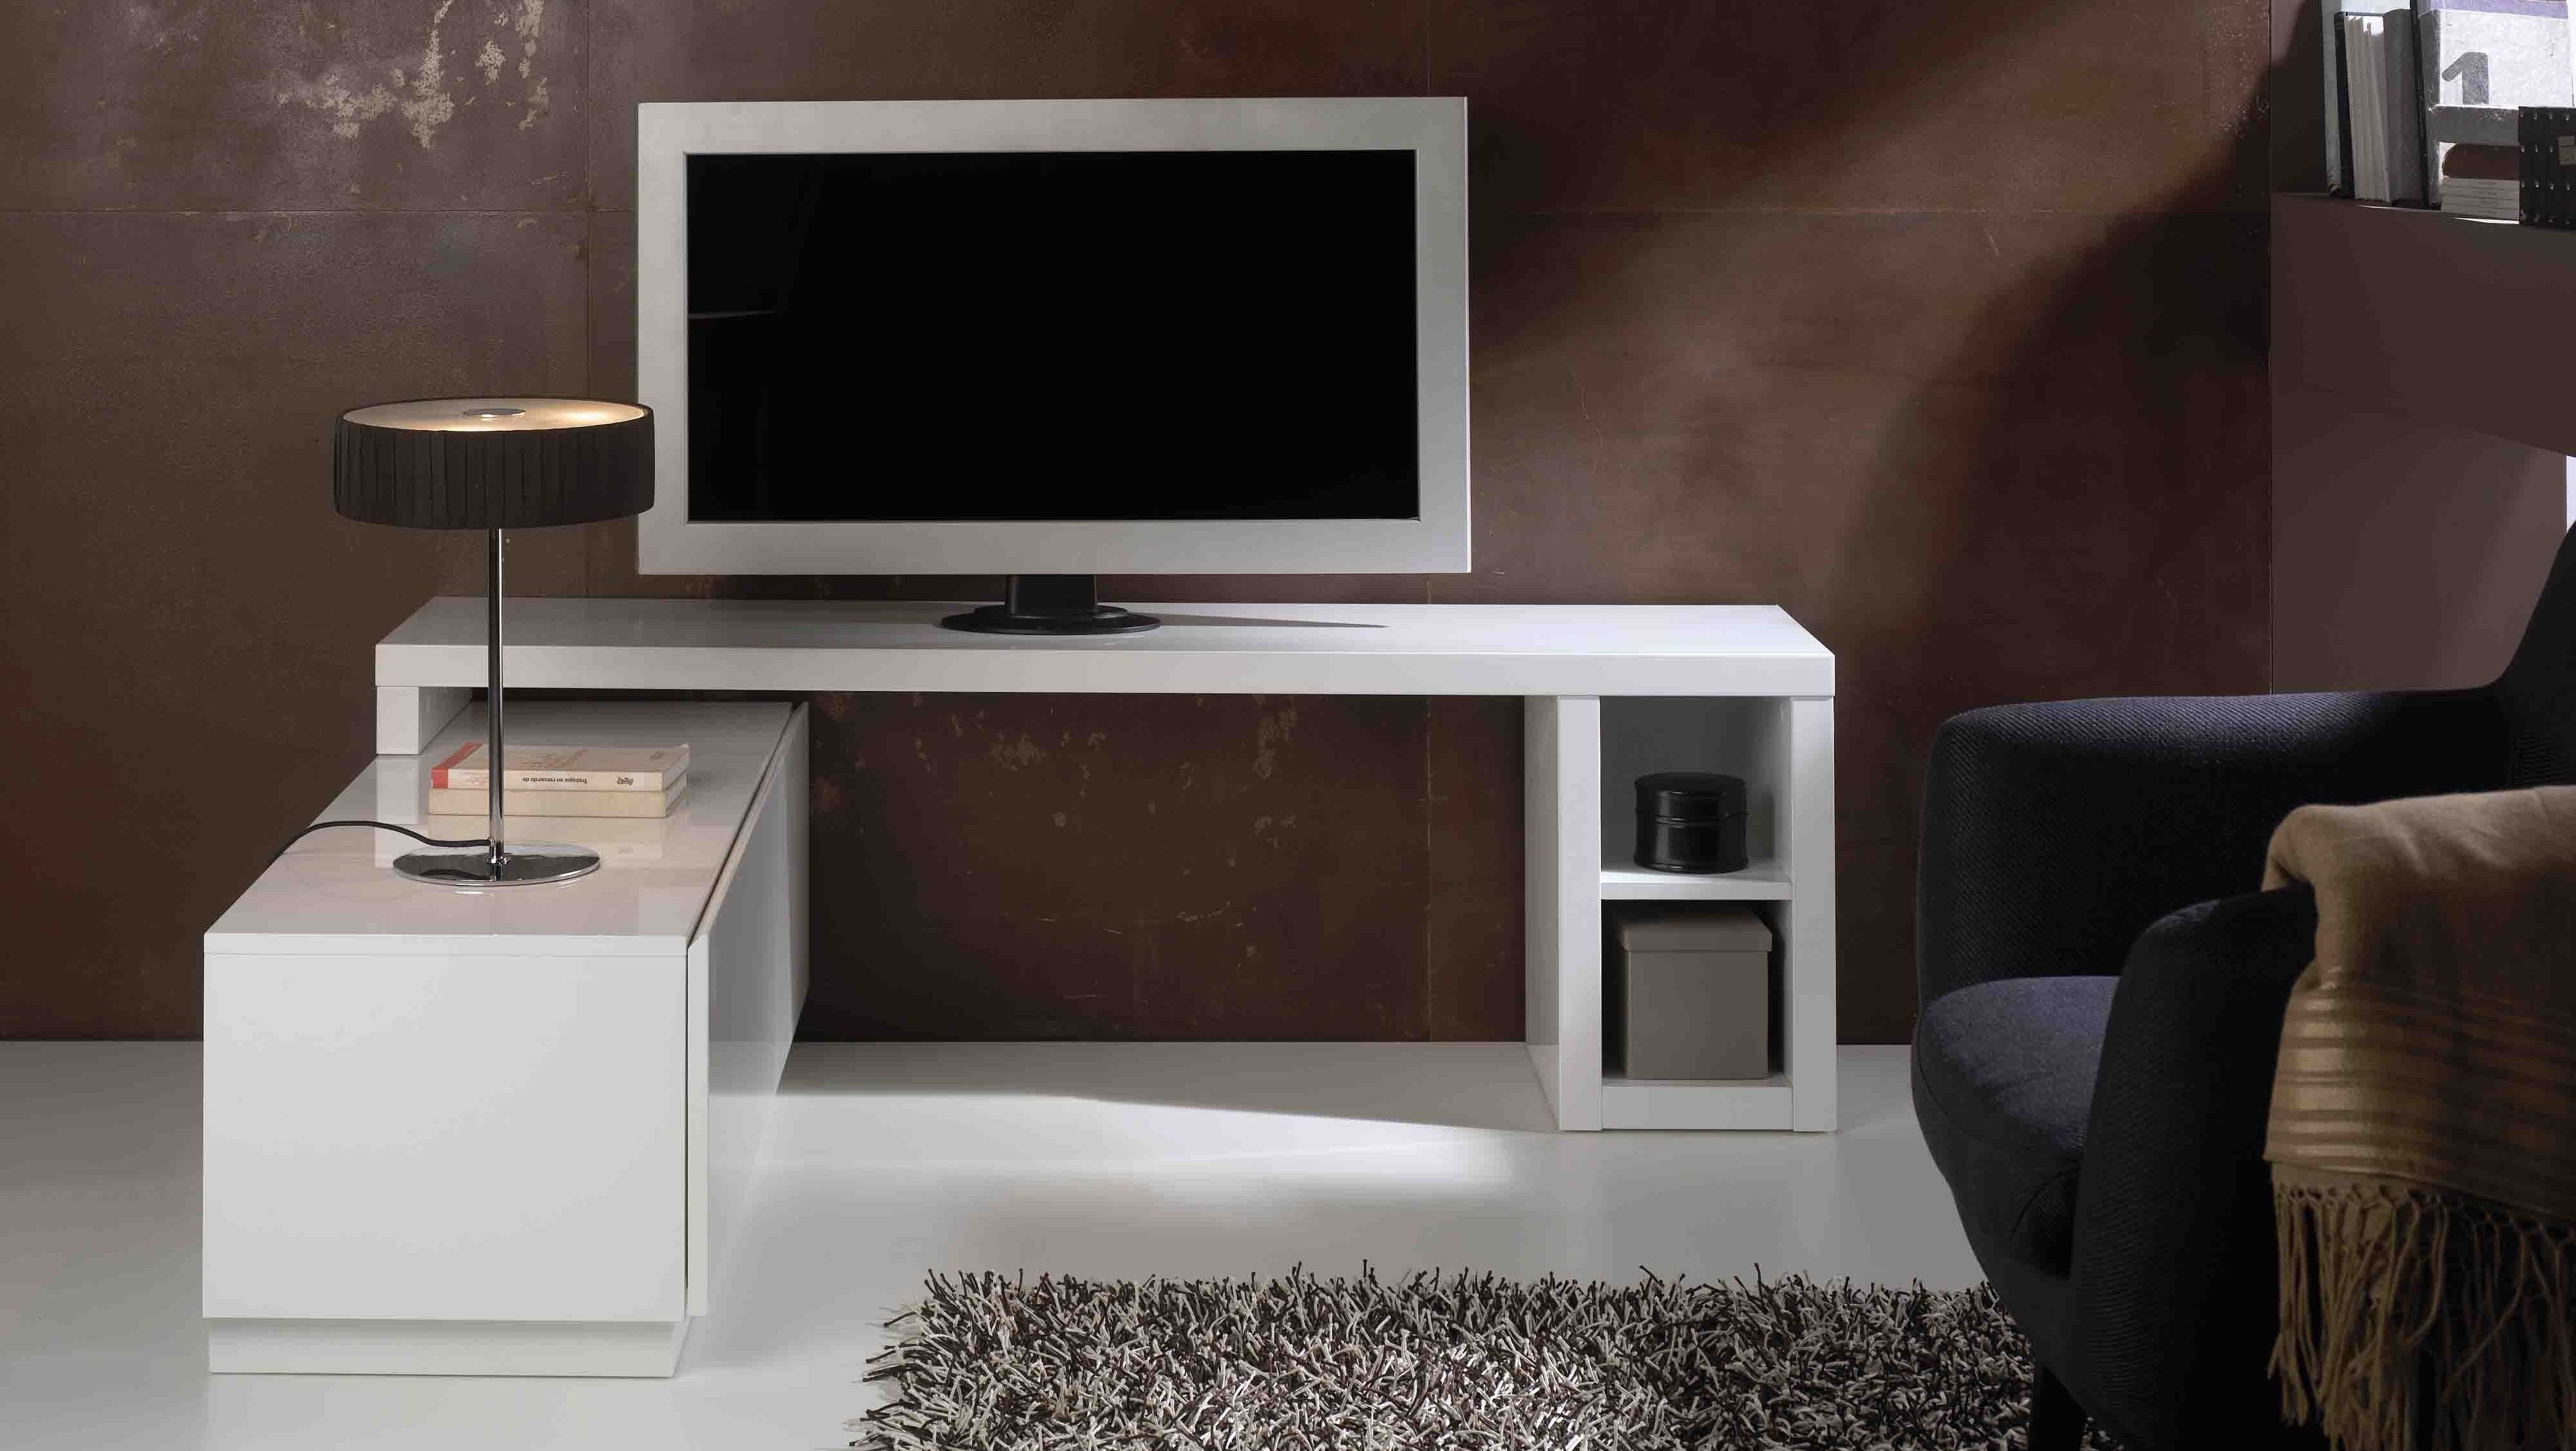 Meuble Tv Zago Television Guide D'achat